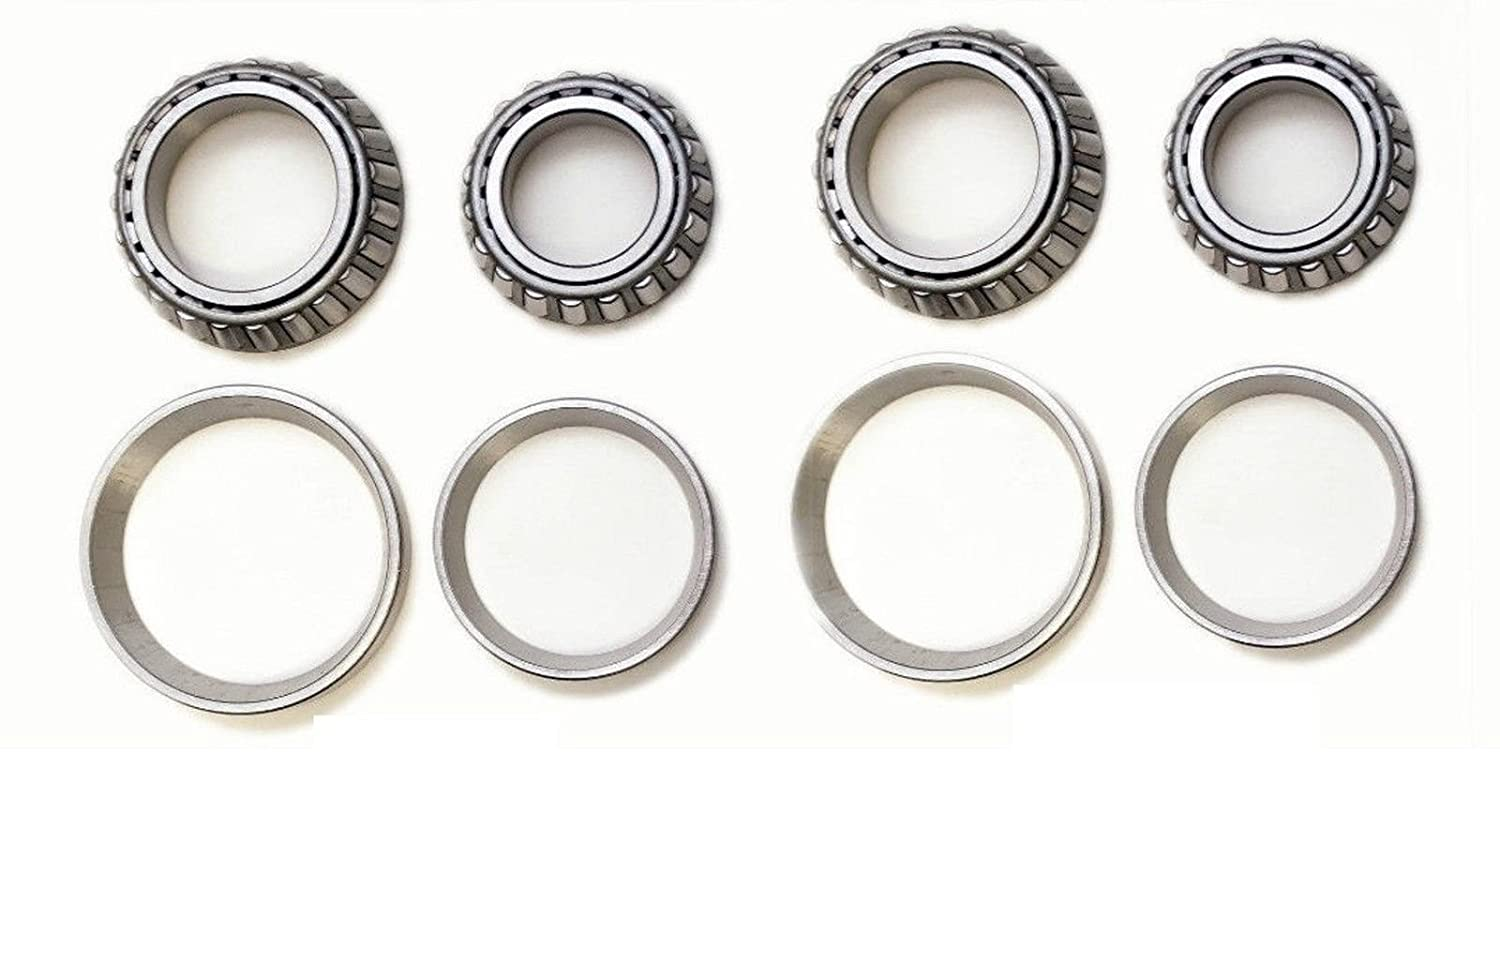 Front Left & Right Wheel Bearing Kit Fit JEEP CJ7 (2WD 4WD) 1977 1978 1979 1980 1981 1982 1983 1984 1985 1986 8USAUTO